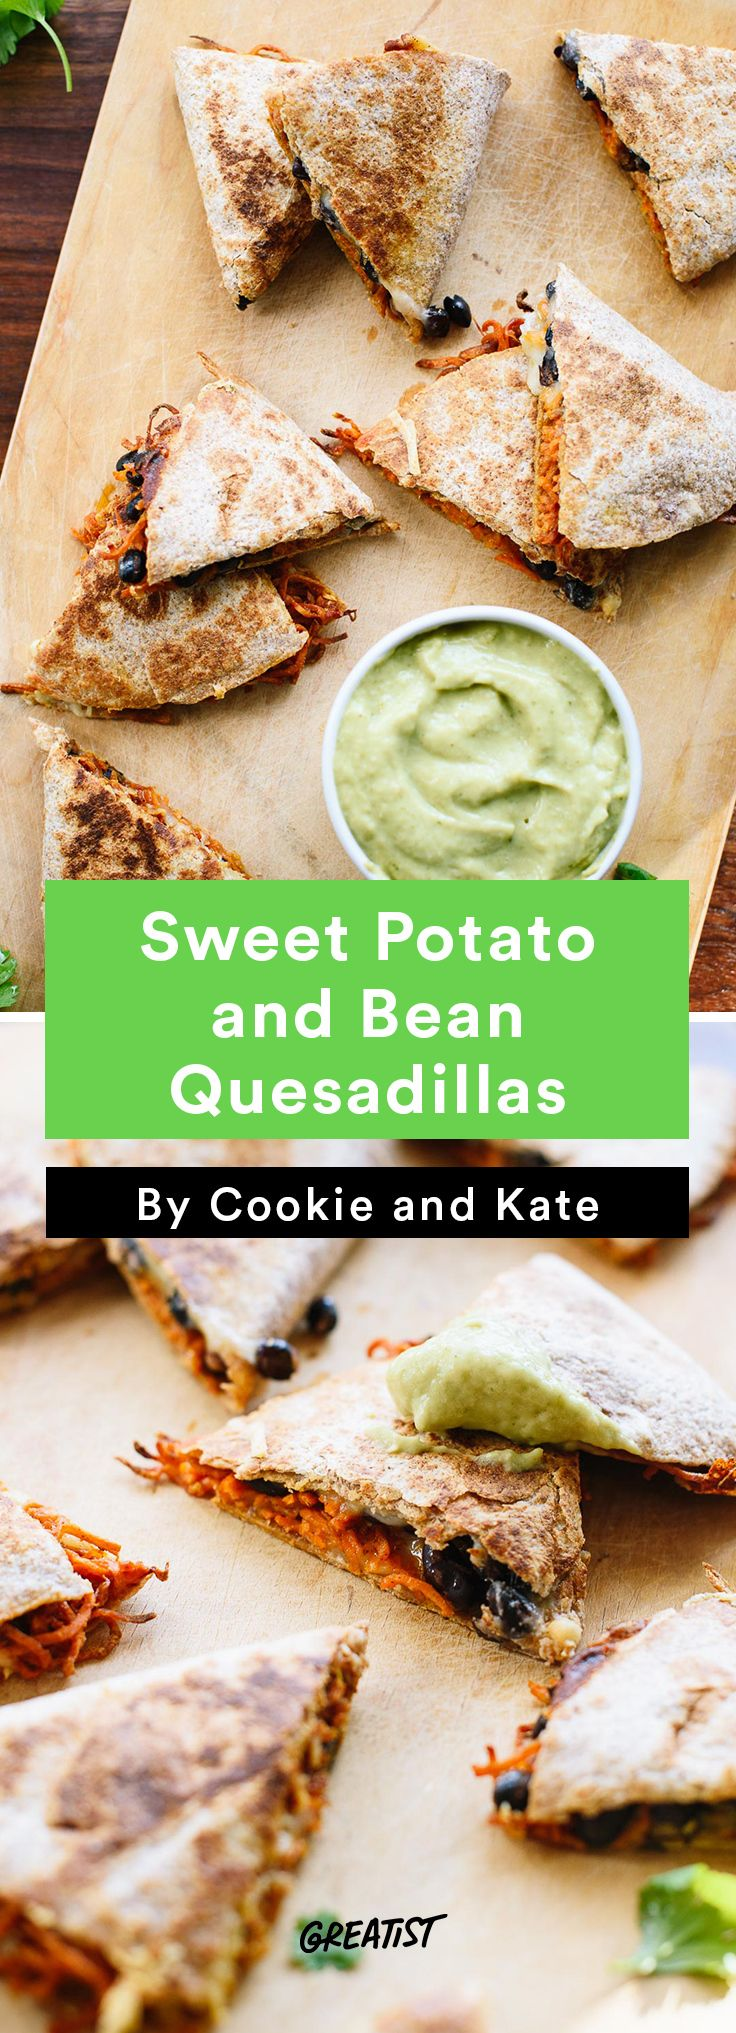 1. Sweet Potato and Bean Quesadillas #healthy #gameday #recipes http://greatist.com/eat/game-day-recipes-that-wont-leave-you-in-a-food-coma